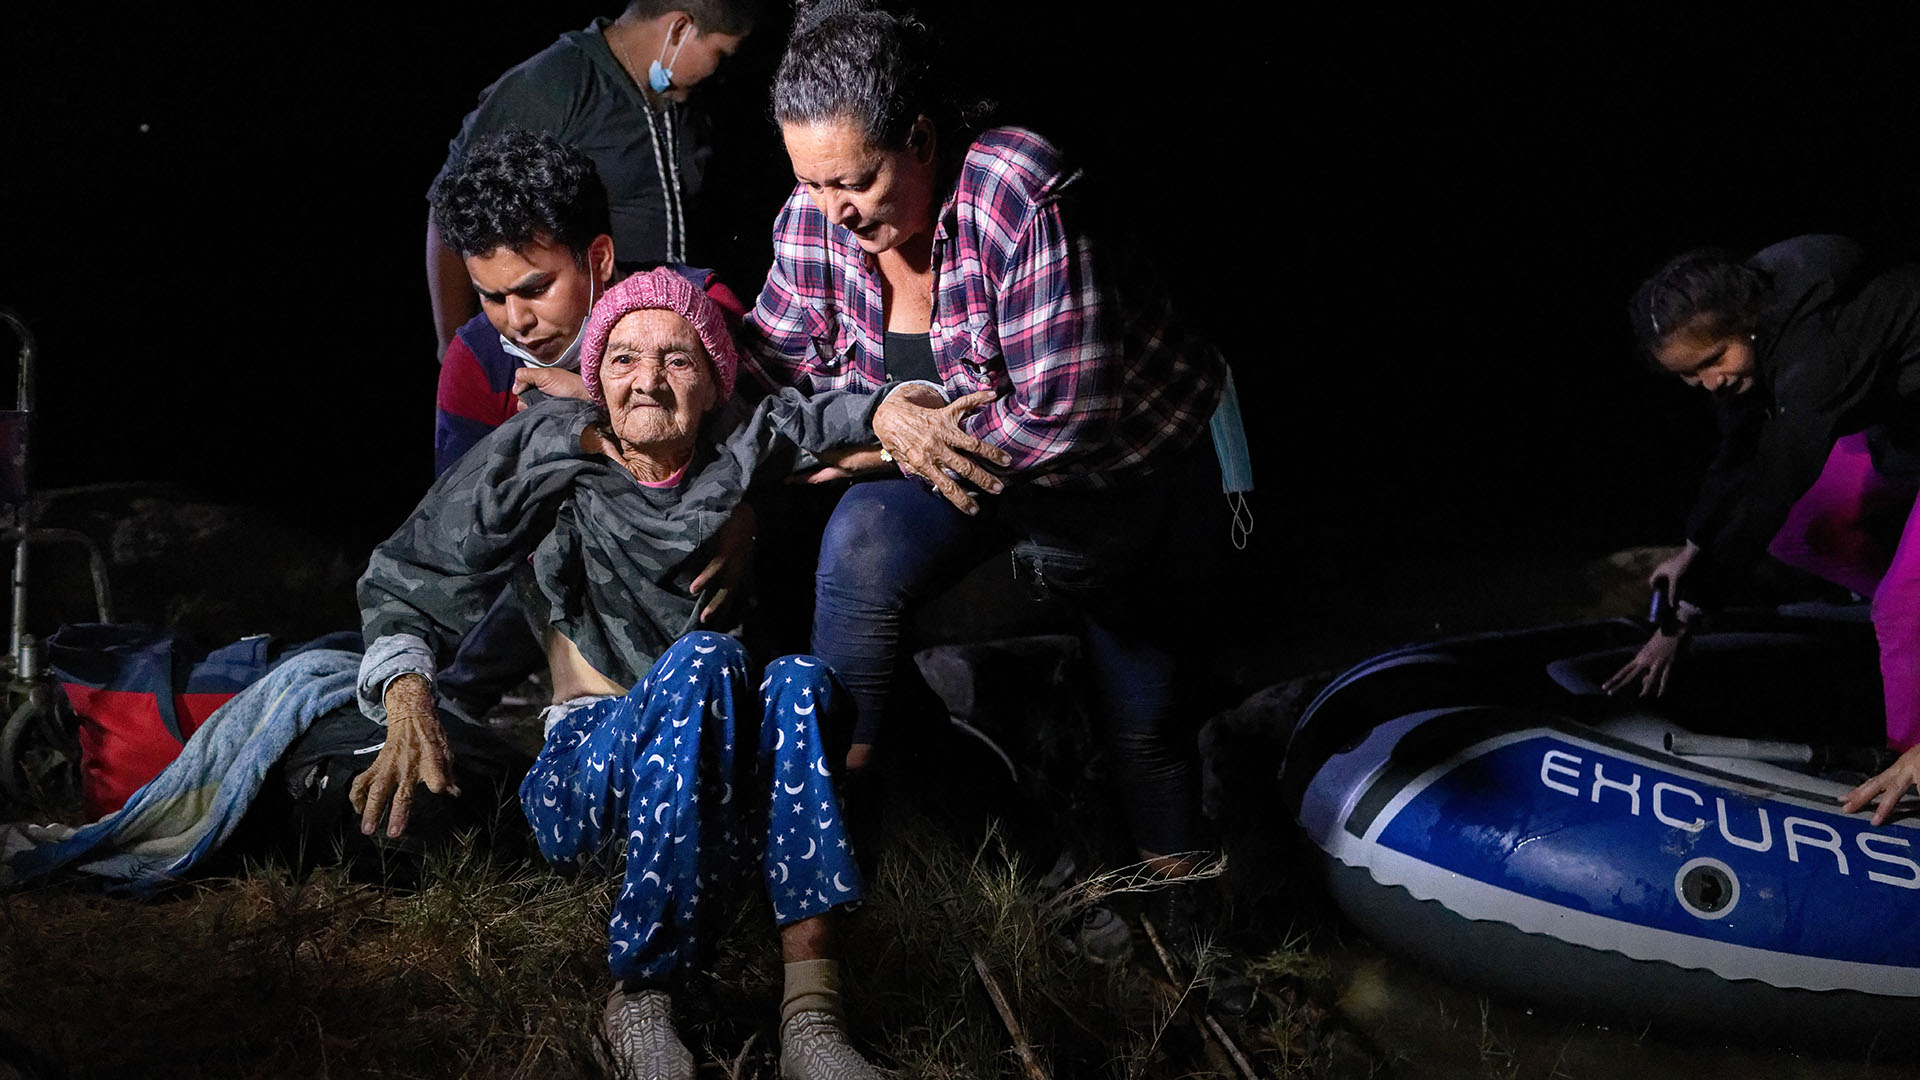 A 93-year-old Honduran migrant granny crossed the US-Mexico border in a wheelchair